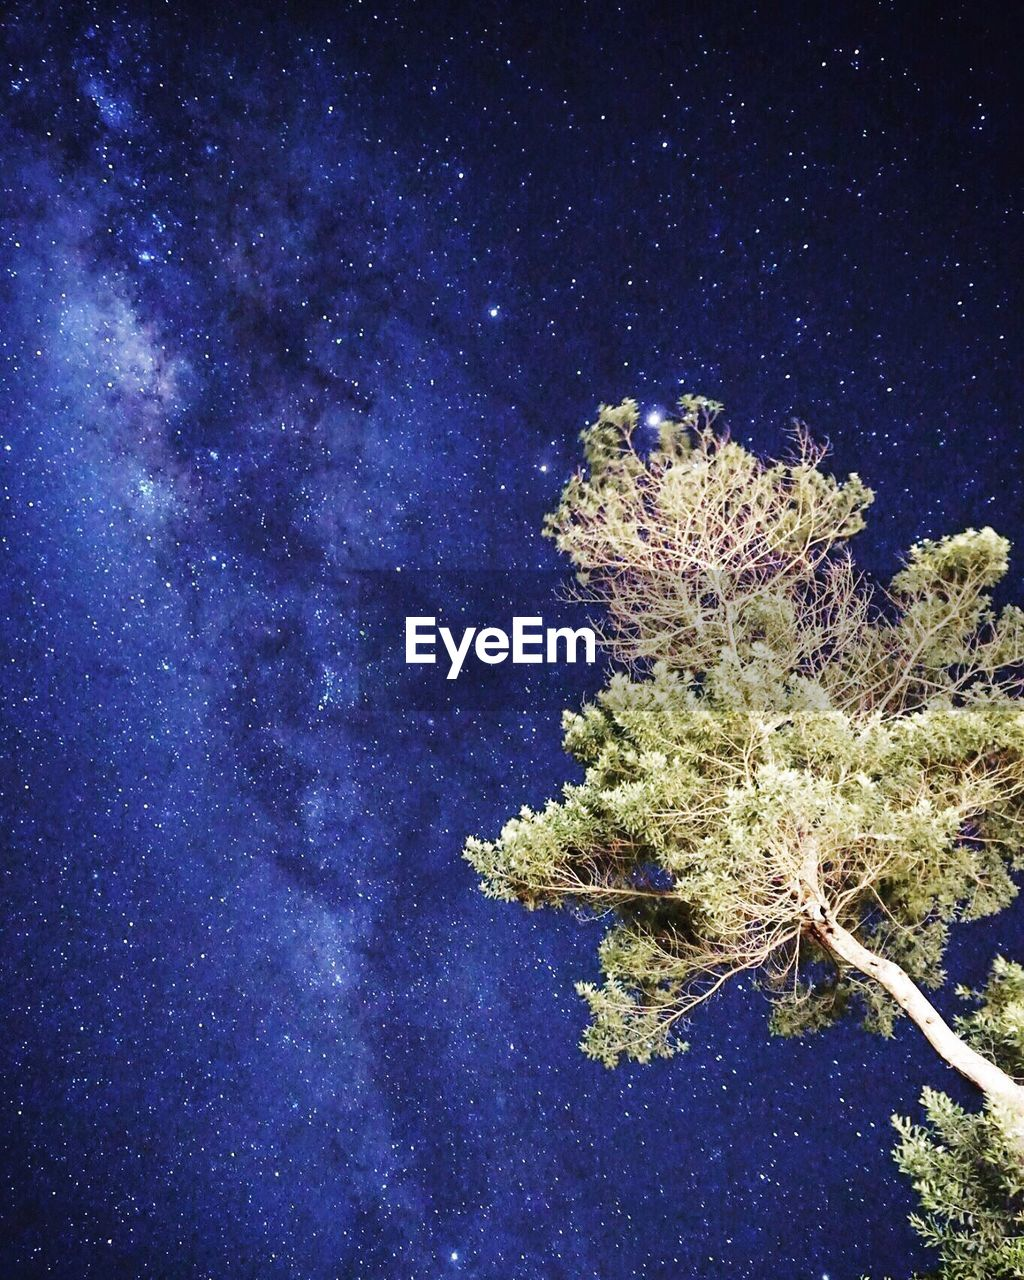 night, blue, plant, nature, no people, beauty in nature, coral, tranquility, undersea, star - space, scenics, outdoors, galaxy, close-up, sky, tree, space, astronomy